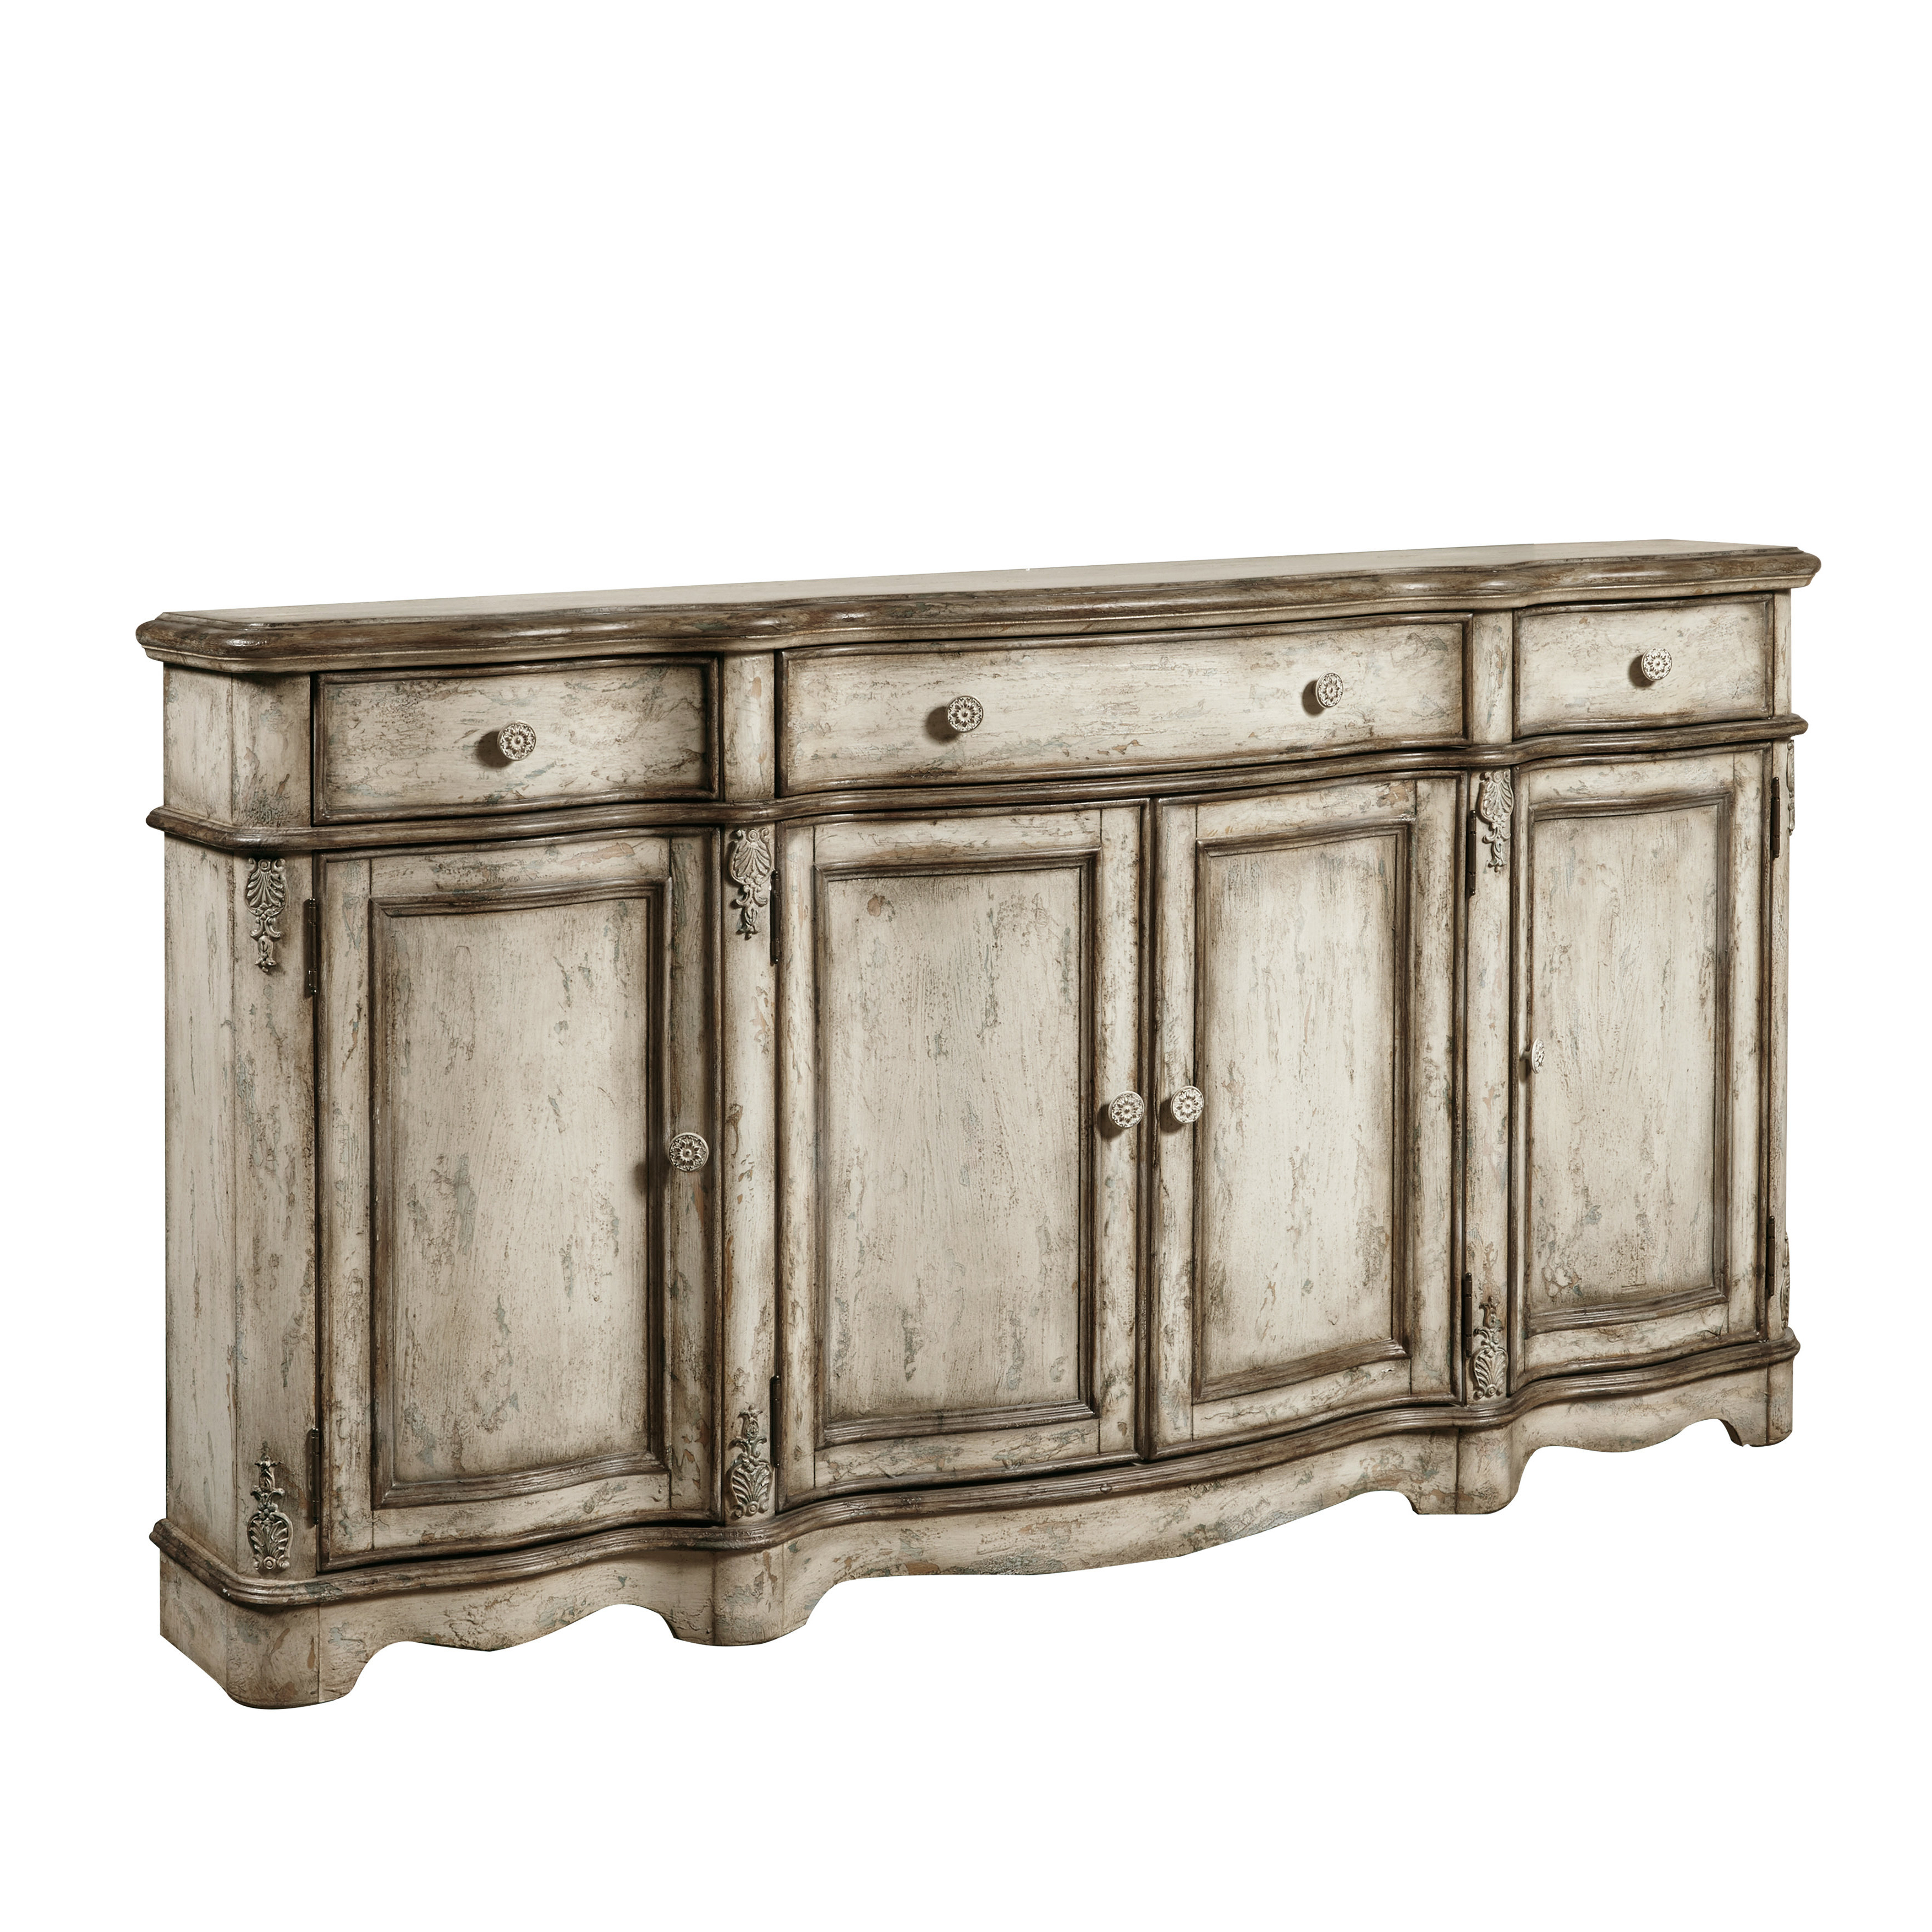 Farmhouse & Rustic Sideboards & Buffets | Birch Lane Inside Seiling Sideboards (View 20 of 20)